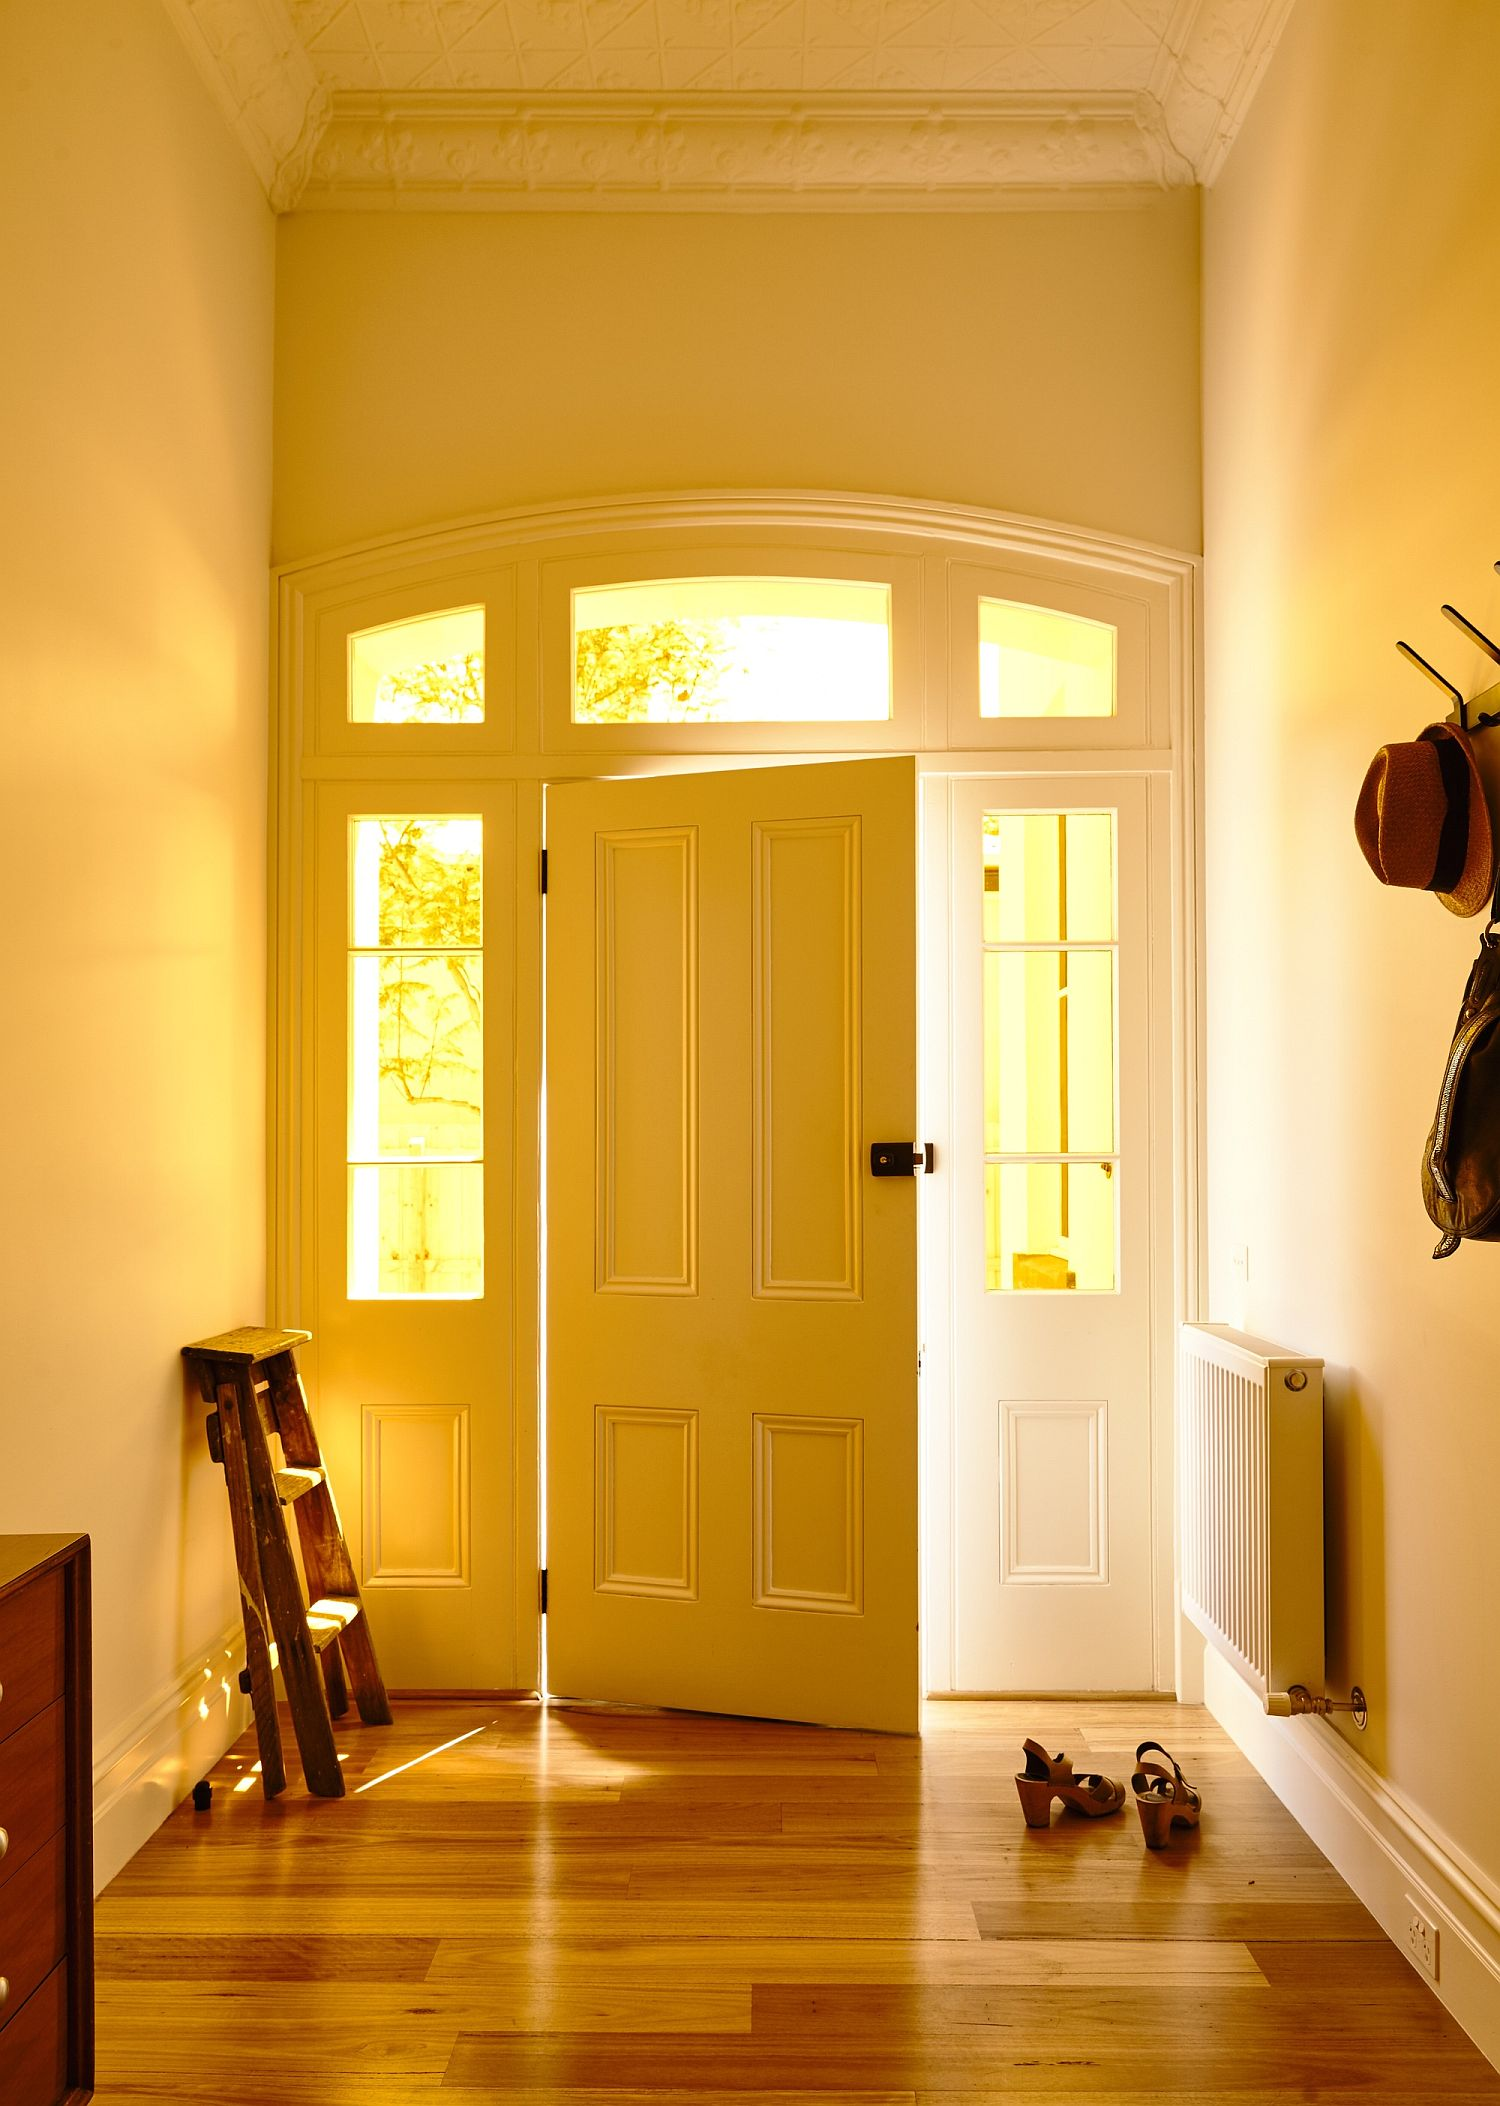 Entrance to the classic home at teh front with a modern Victorian vibe